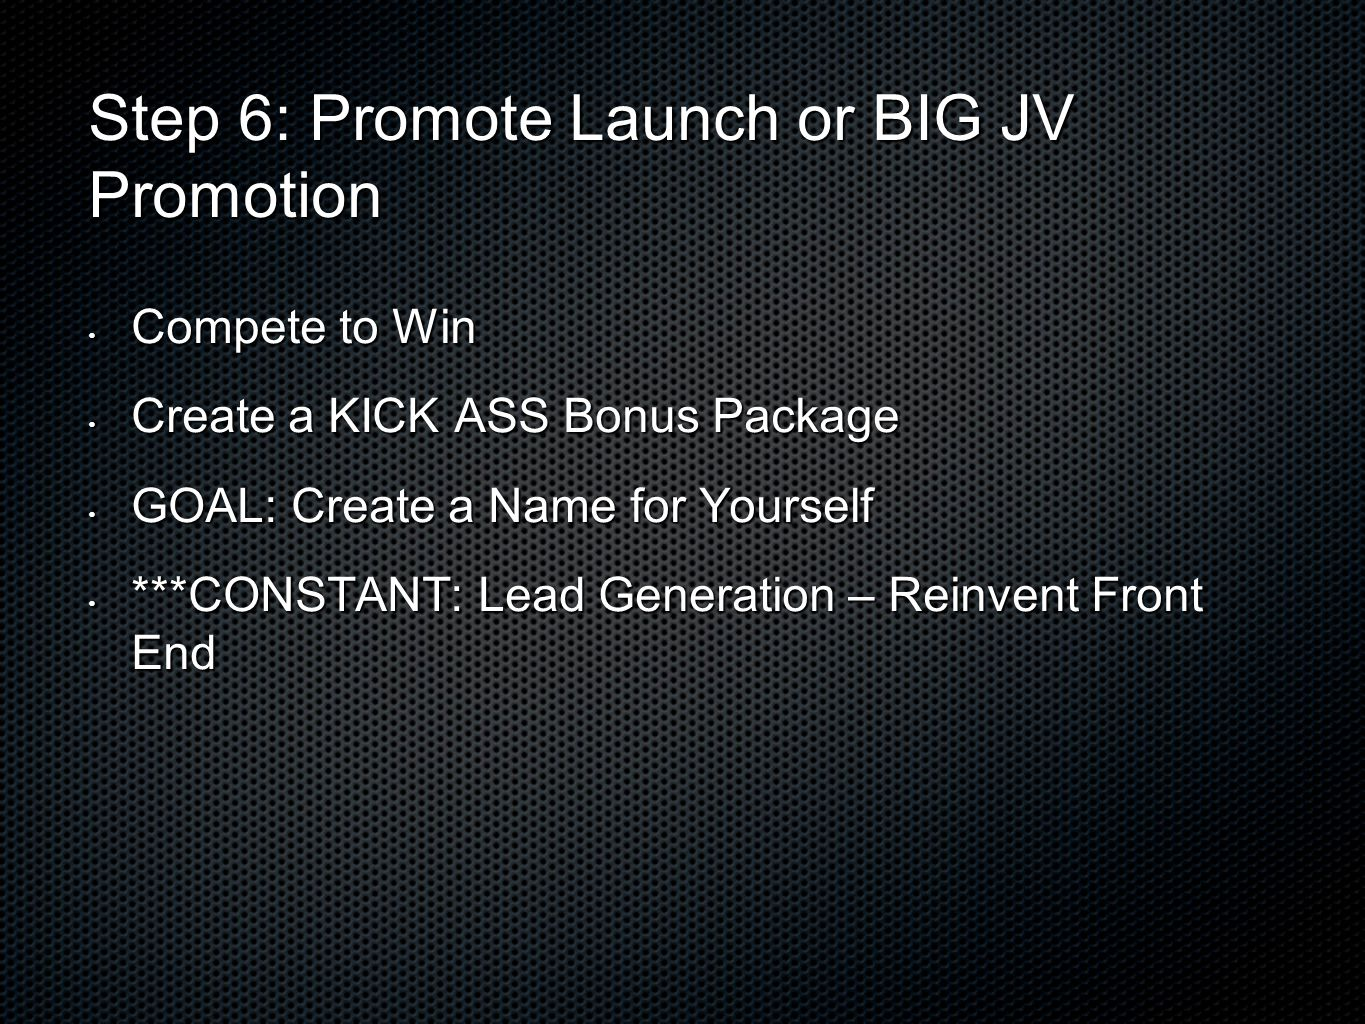 Step 6: Promote Launch or BIG JV Promotion Compete to Win Compete to Win Create a KICK ASS Bonus Package Create a KICK ASS Bonus Package GOAL: Create a Name for Yourself GOAL: Create a Name for Yourself ***CONSTANT: Lead Generation – Reinvent Front End ***CONSTANT: Lead Generation – Reinvent Front End